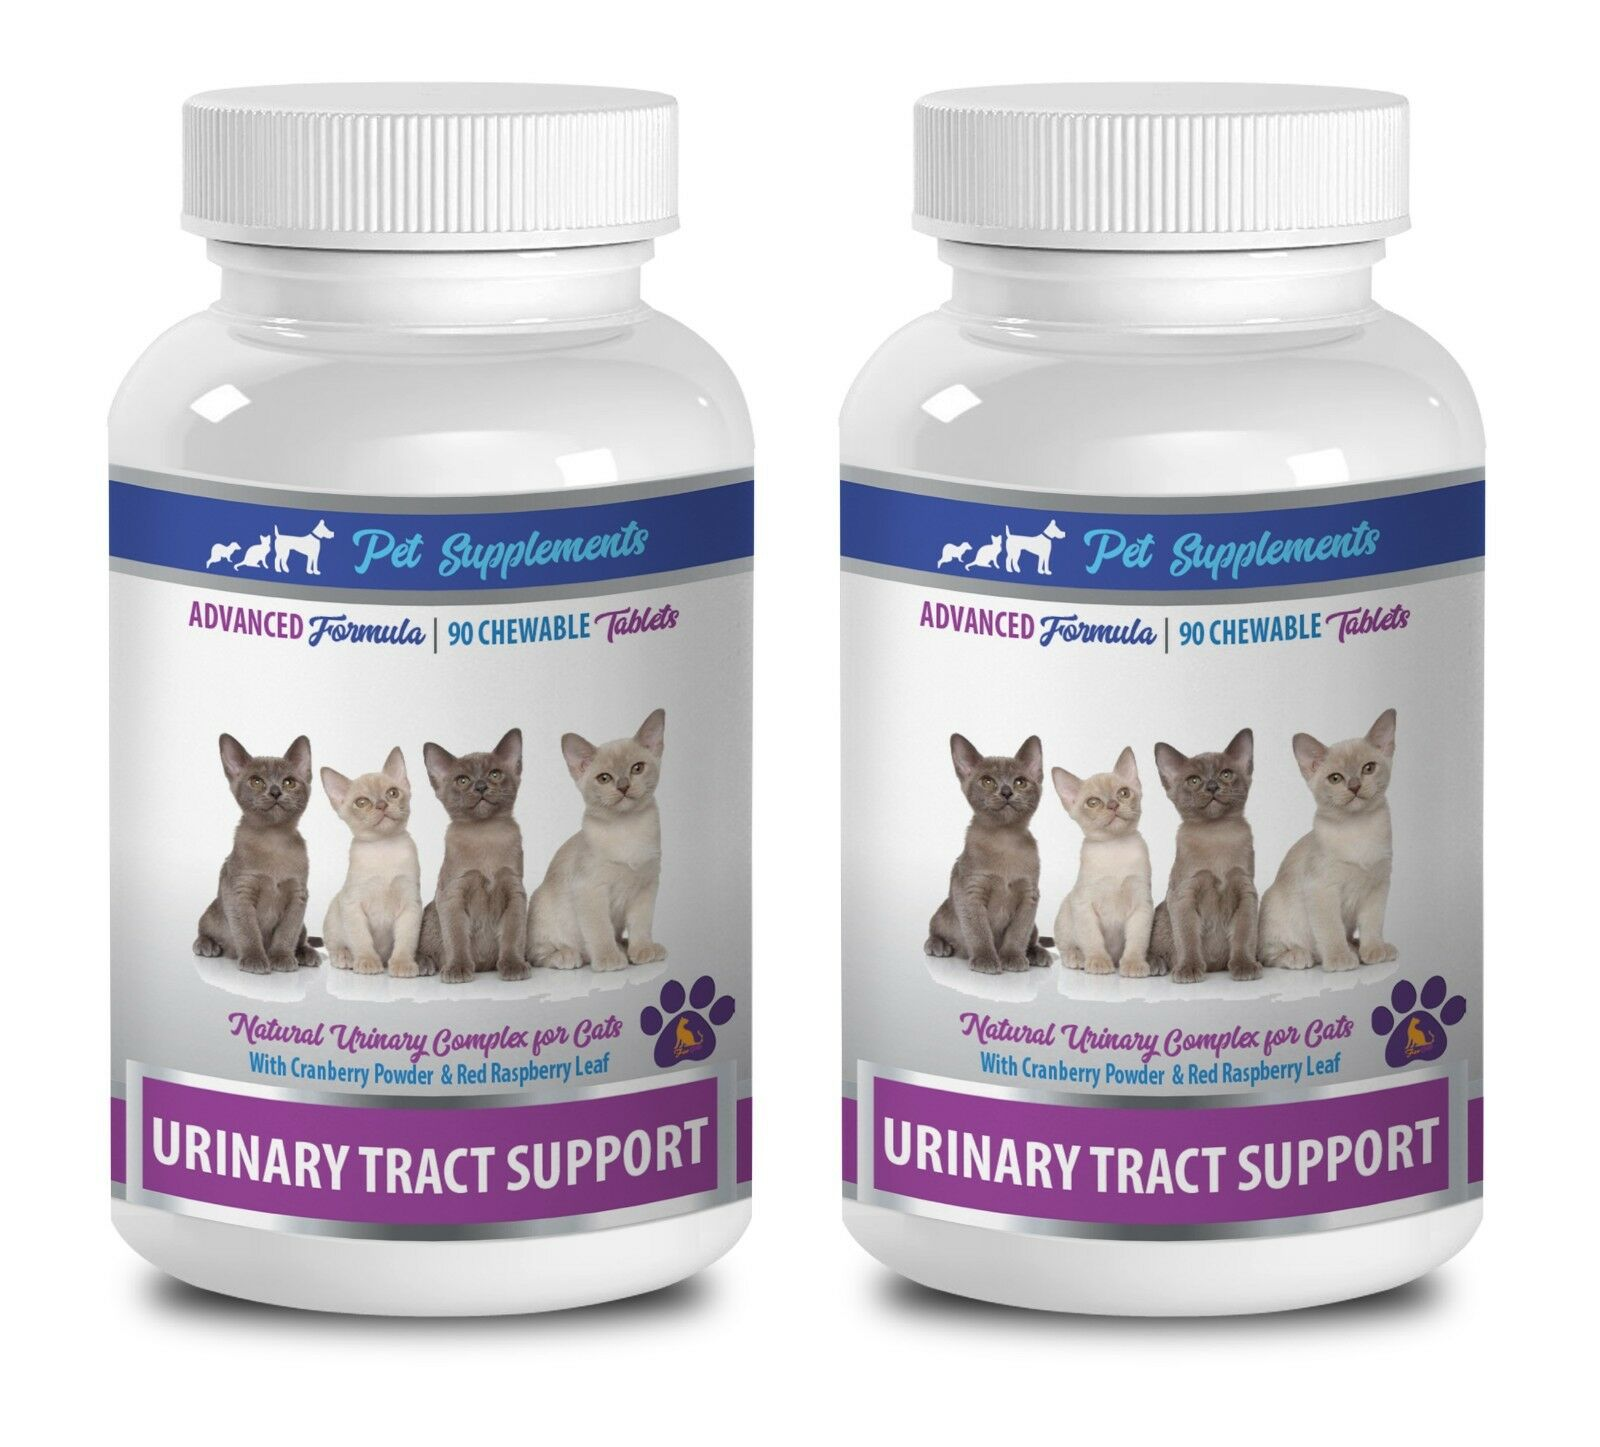 Cat urinary support - CAT URINARY TRACT SUPPORT 2B- cranberry supplements cats